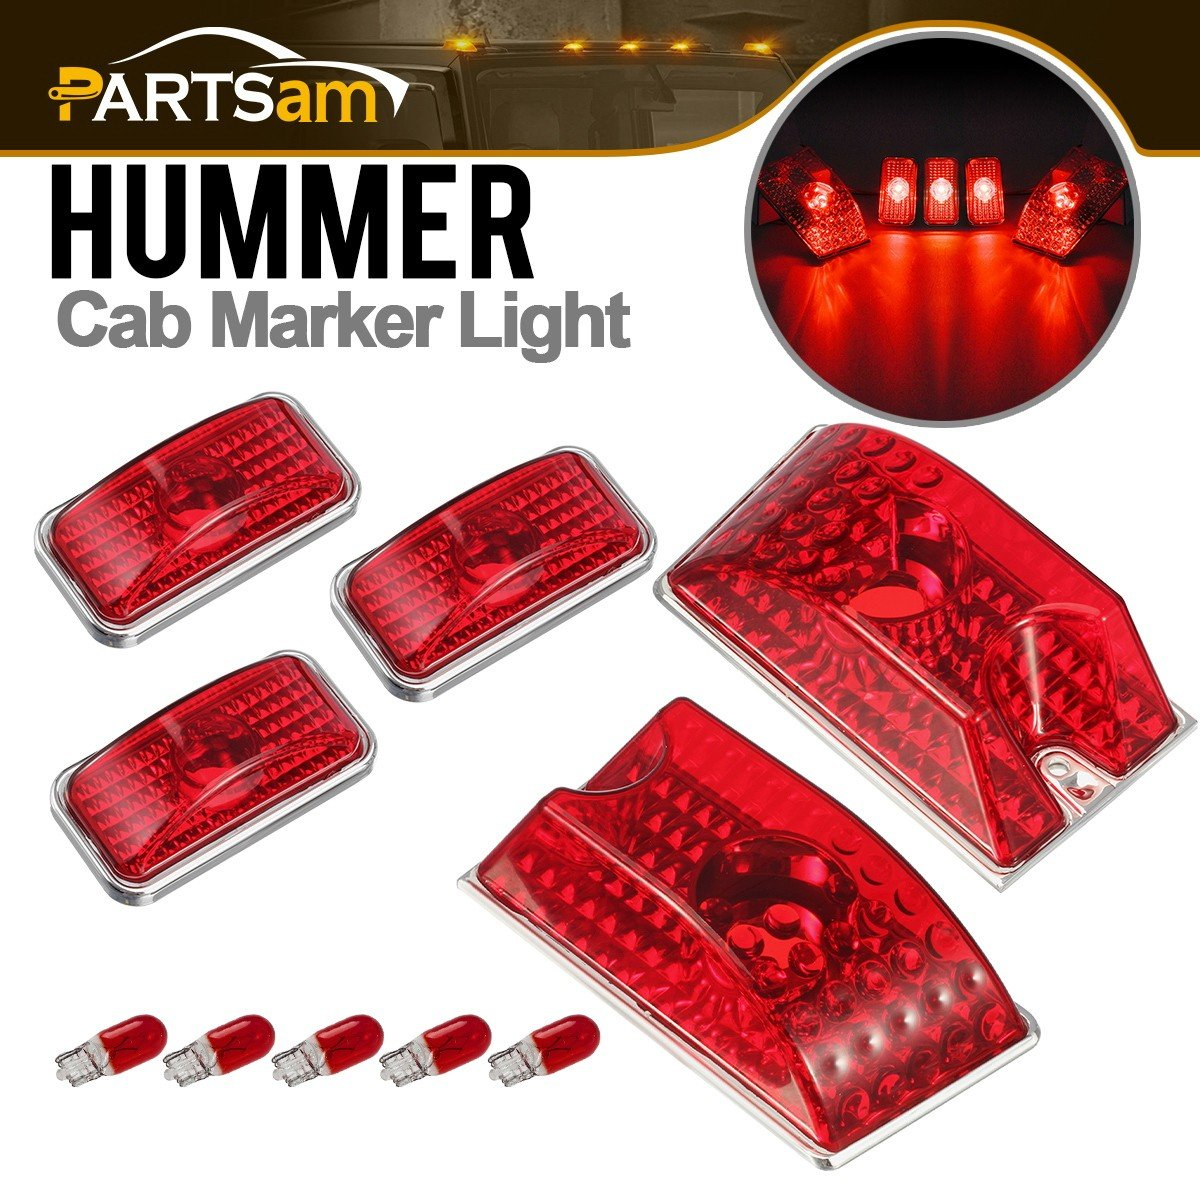 Partsam 5pcs 264160R Red Lens Cab Marker Roof Running Top Clearance Crystal Chrome Lights w/5xT10 194 168 W5W 2825 Red Halogen Bulbs Replacmeent for 2003-2009 Hummer H2 SUV SUT Waterproof